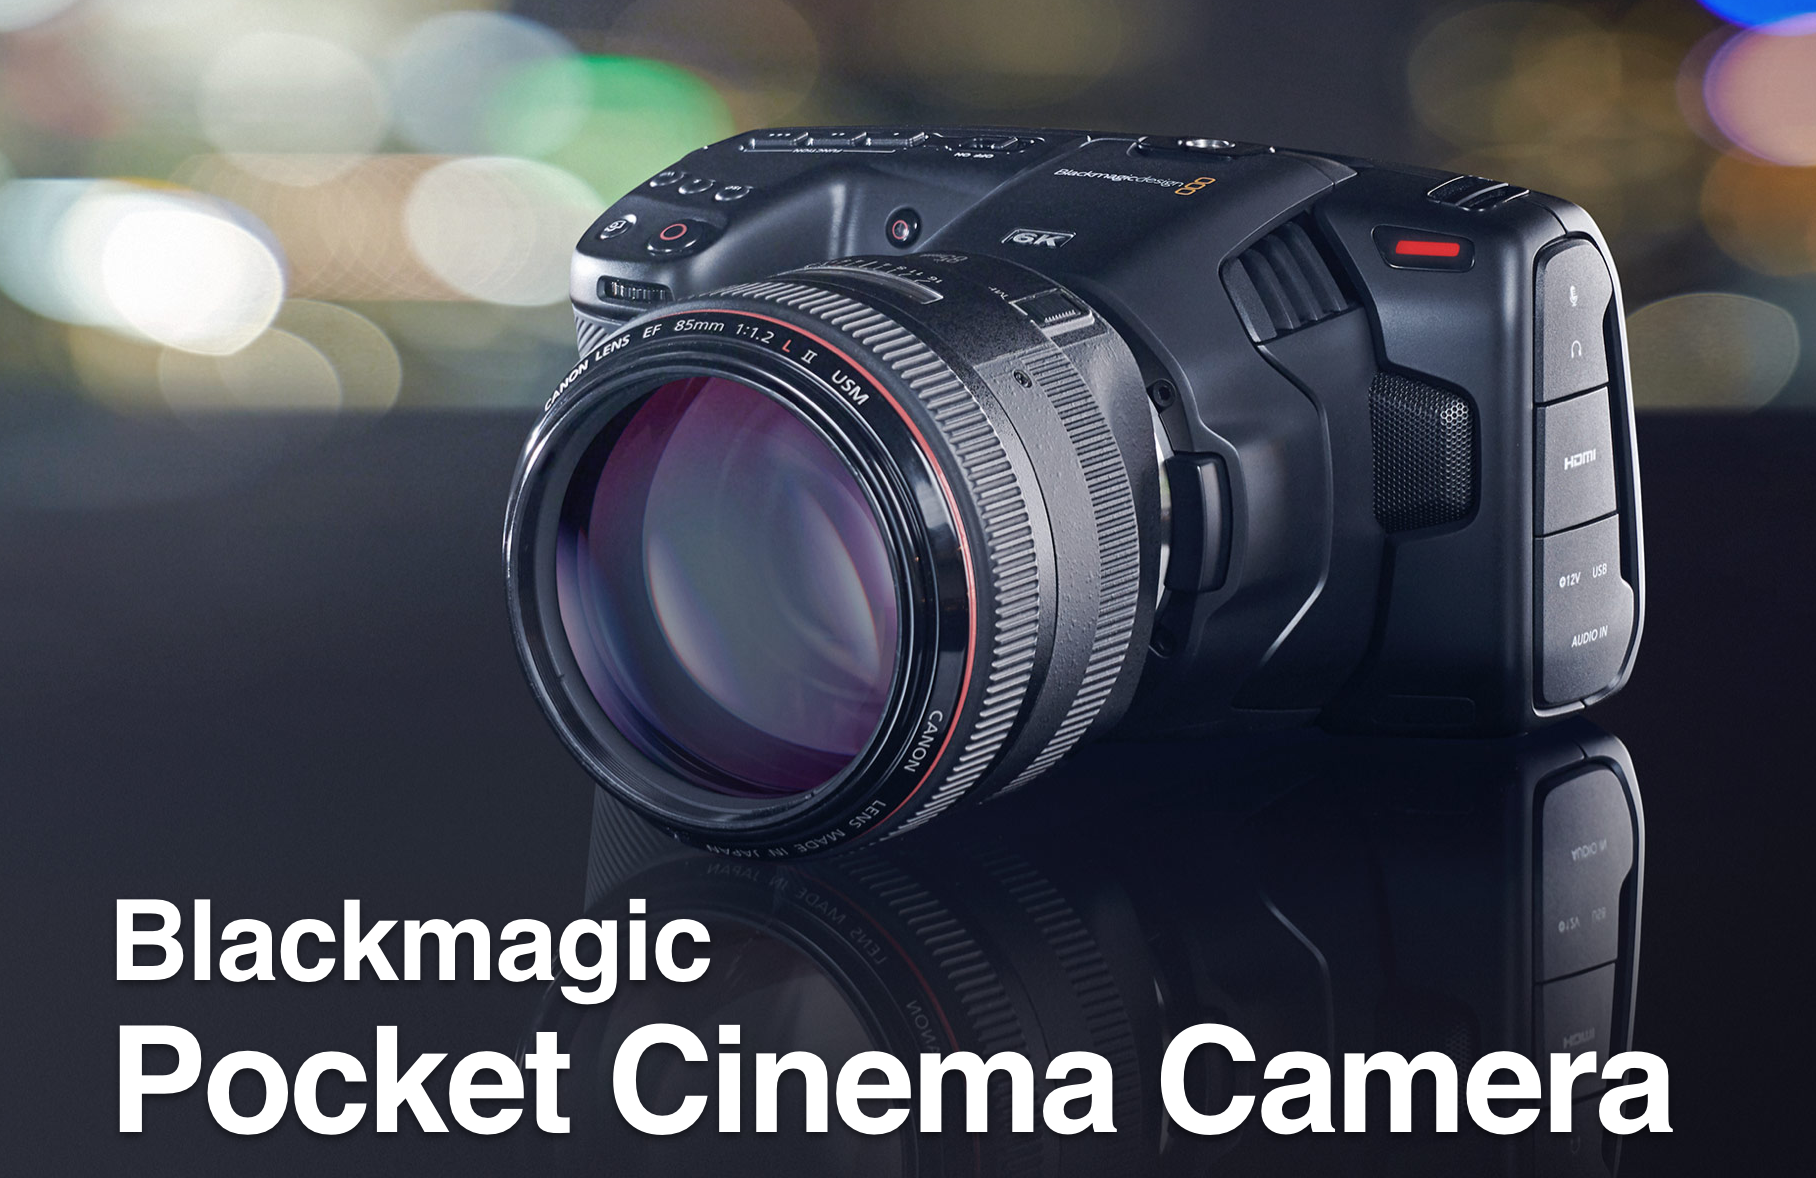 Blackmagic Design S35 Pocket Cinema Camera 6K